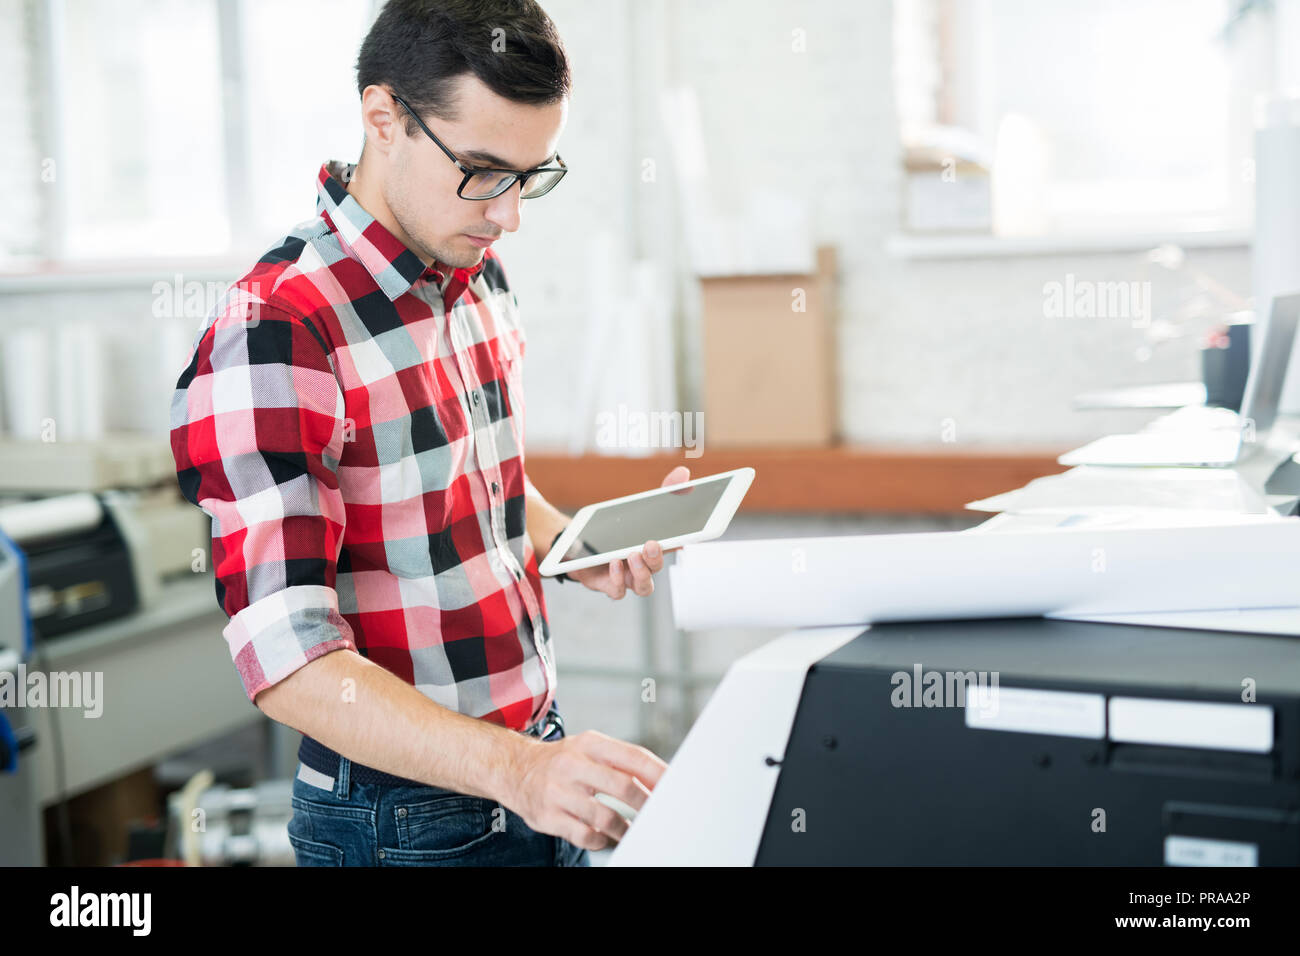 Busy technician working with printer - Stock Image